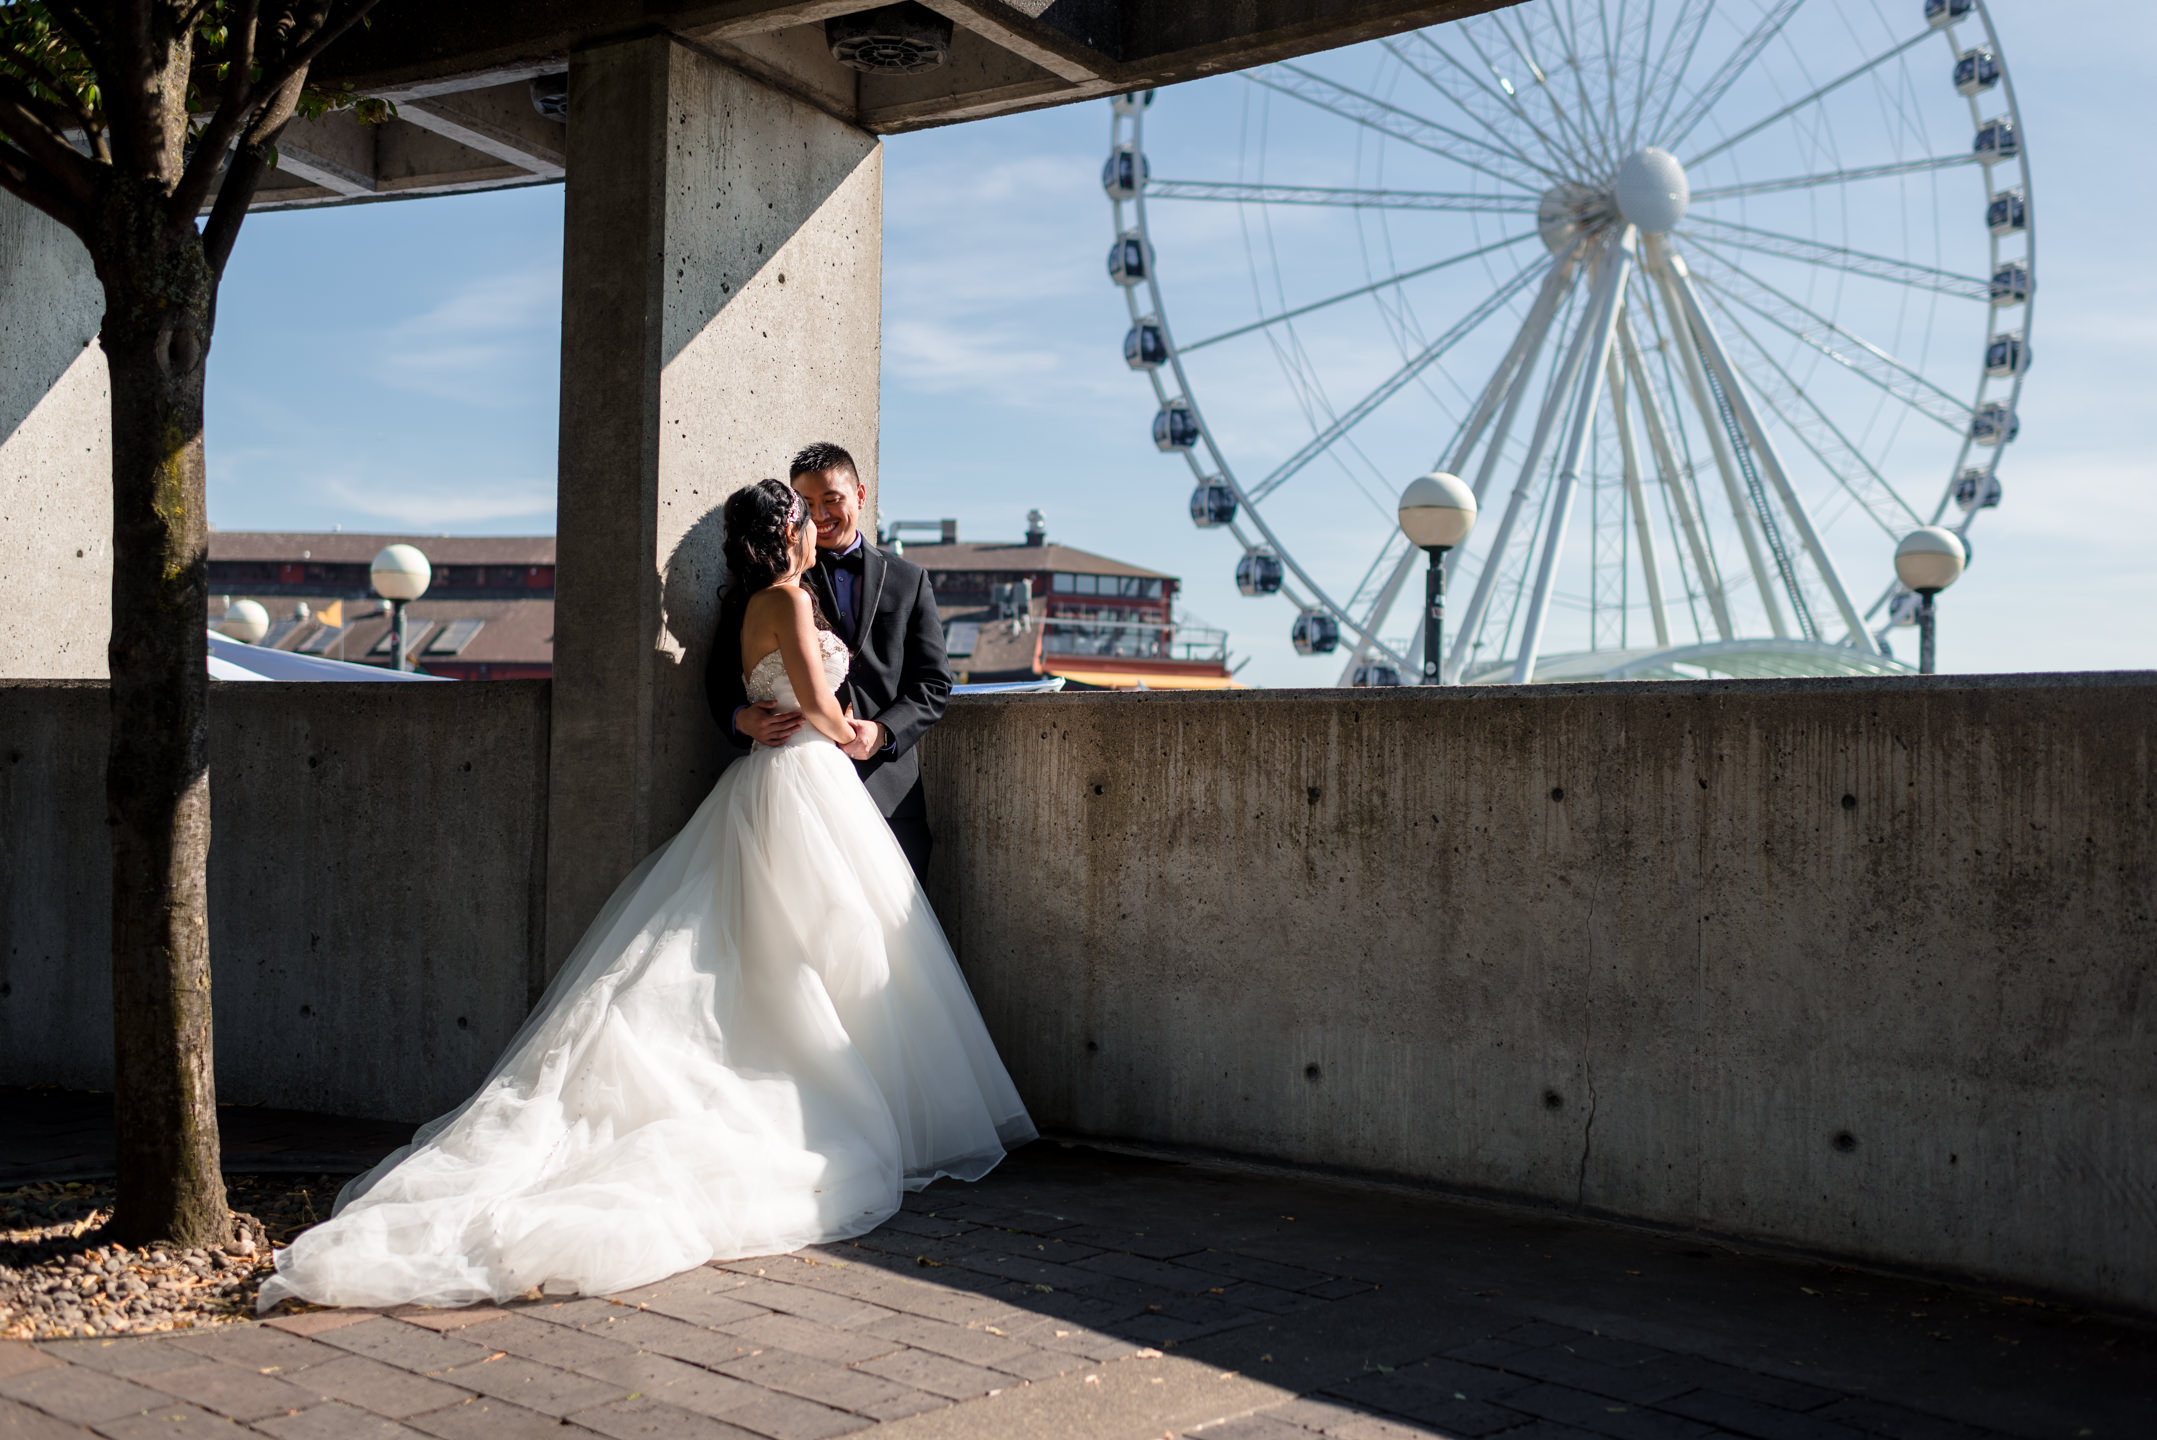 Asian Bride and Groom Romantic Wedding Portrait Seattle Great Wh